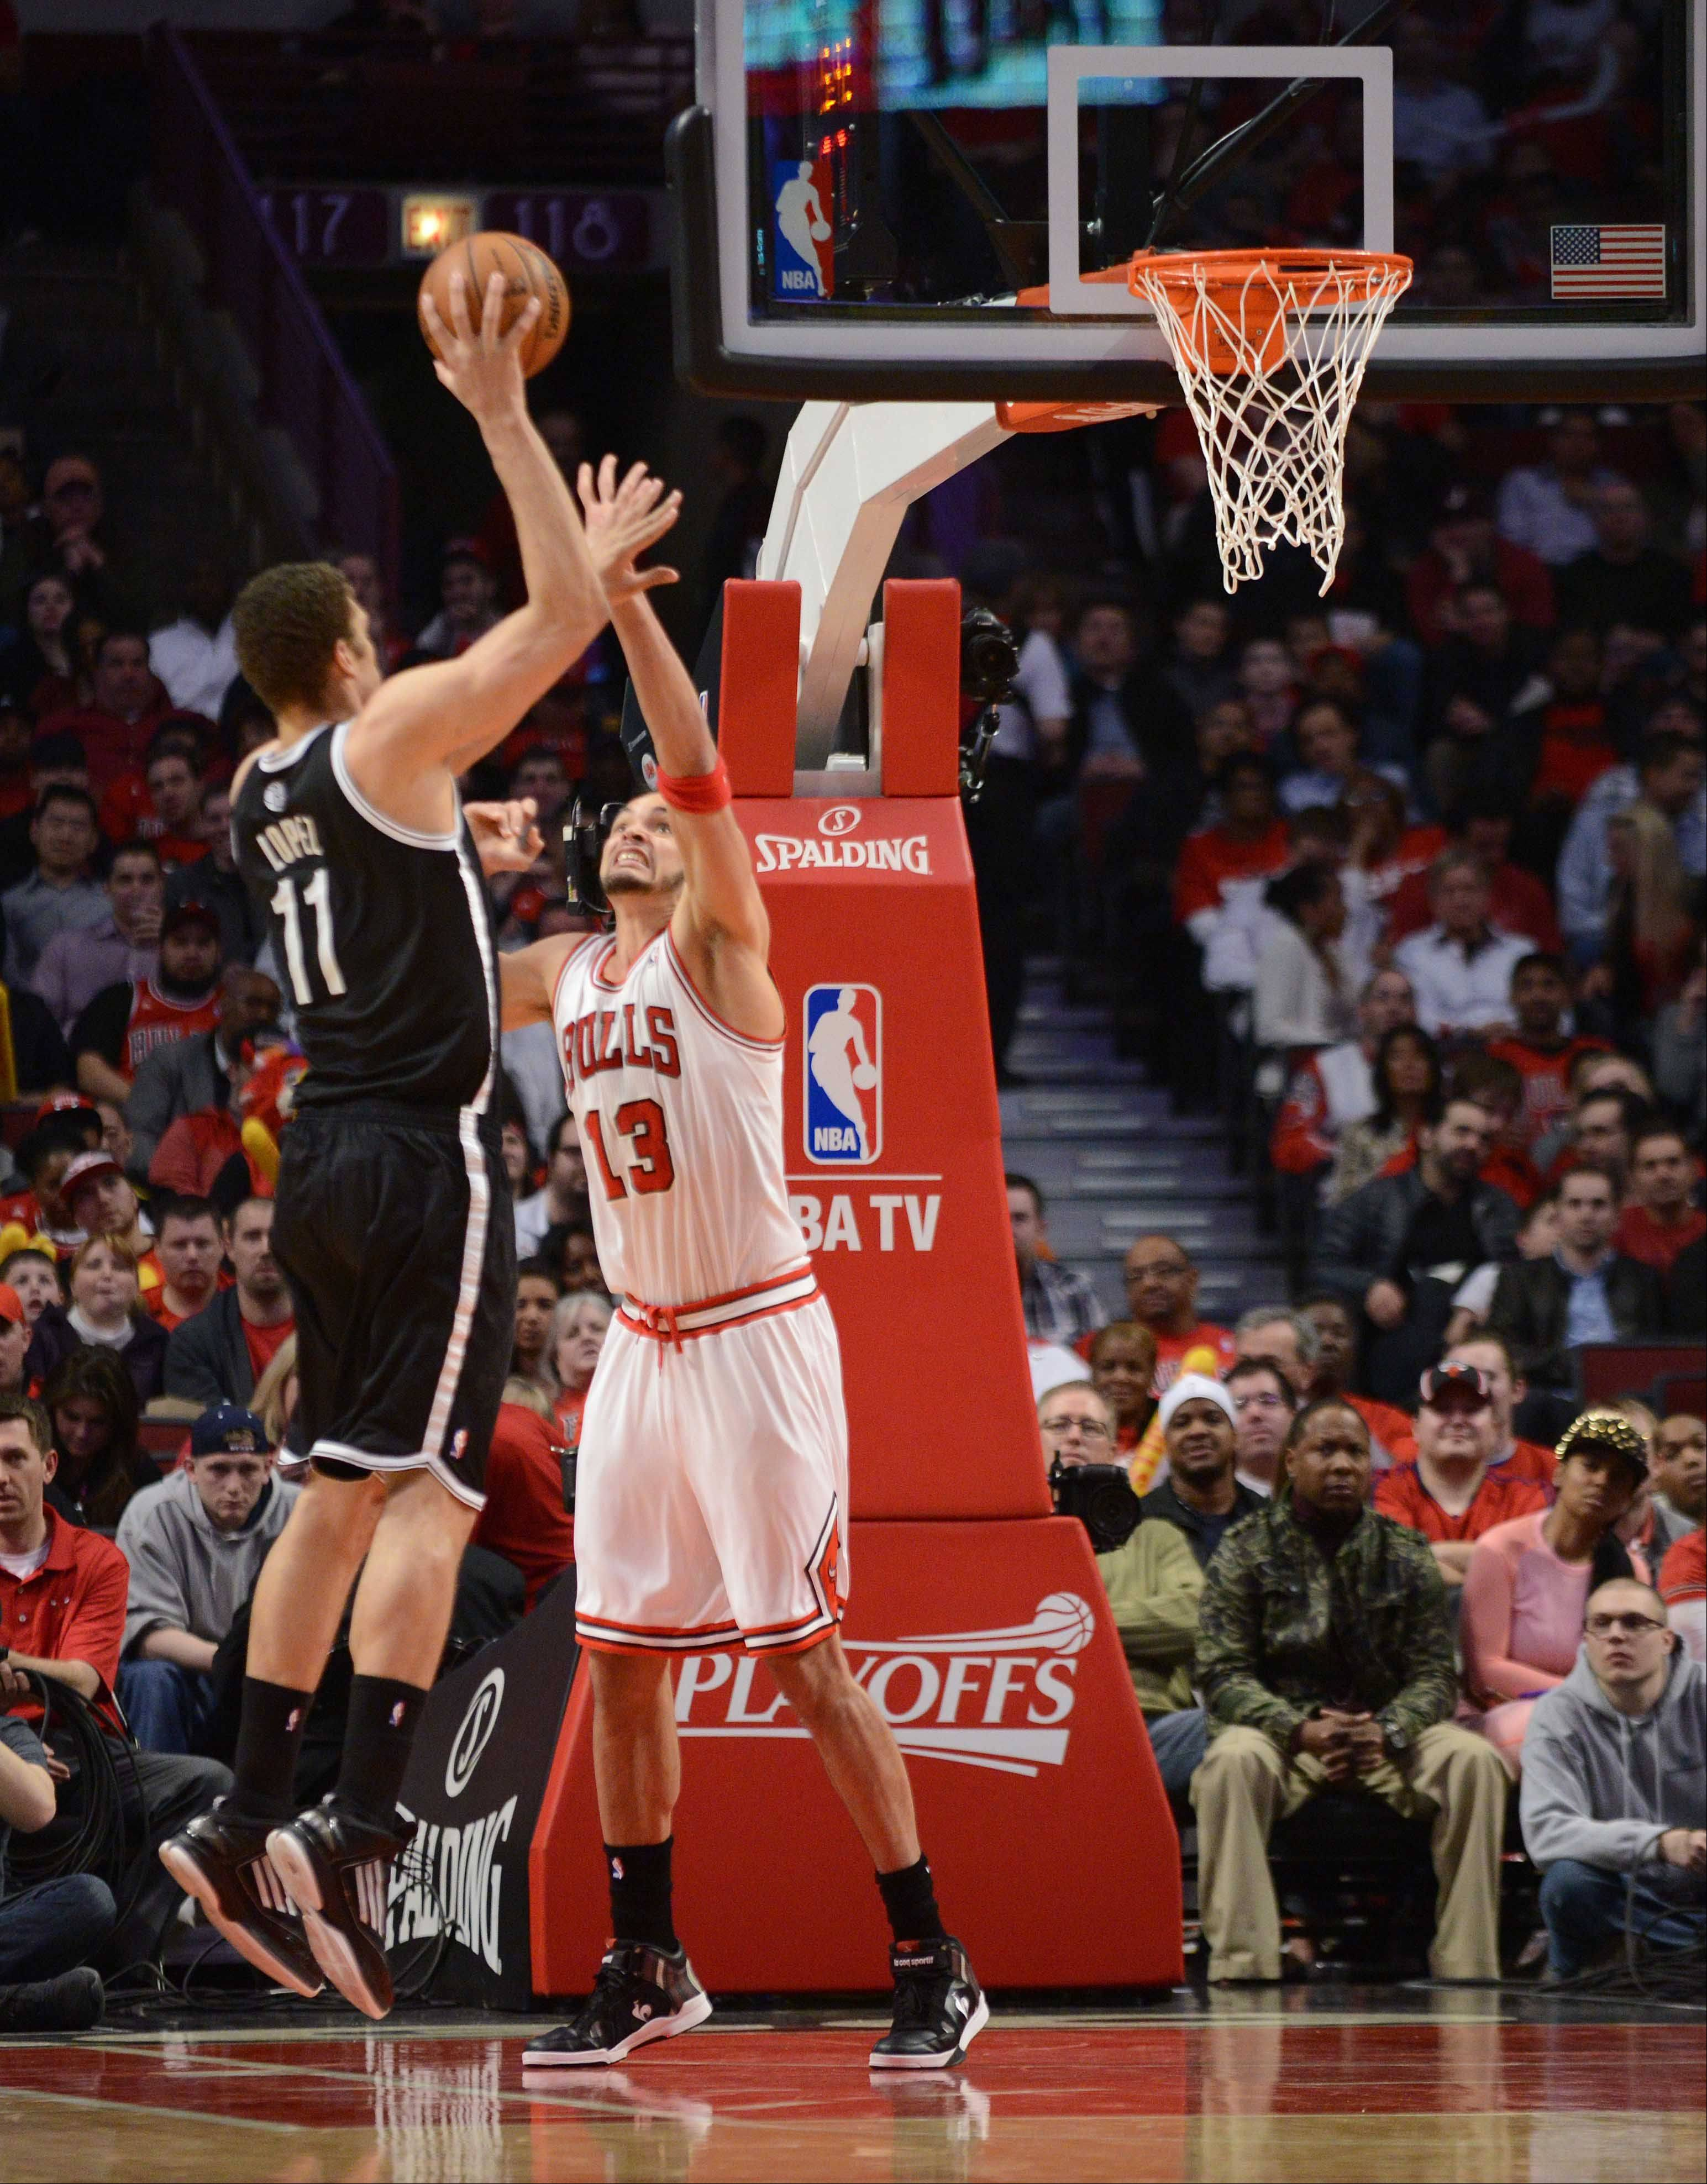 Brook Lopez of the Brooklyn Nets puts up a shot while Joakim Noah of Chicago tries to block.